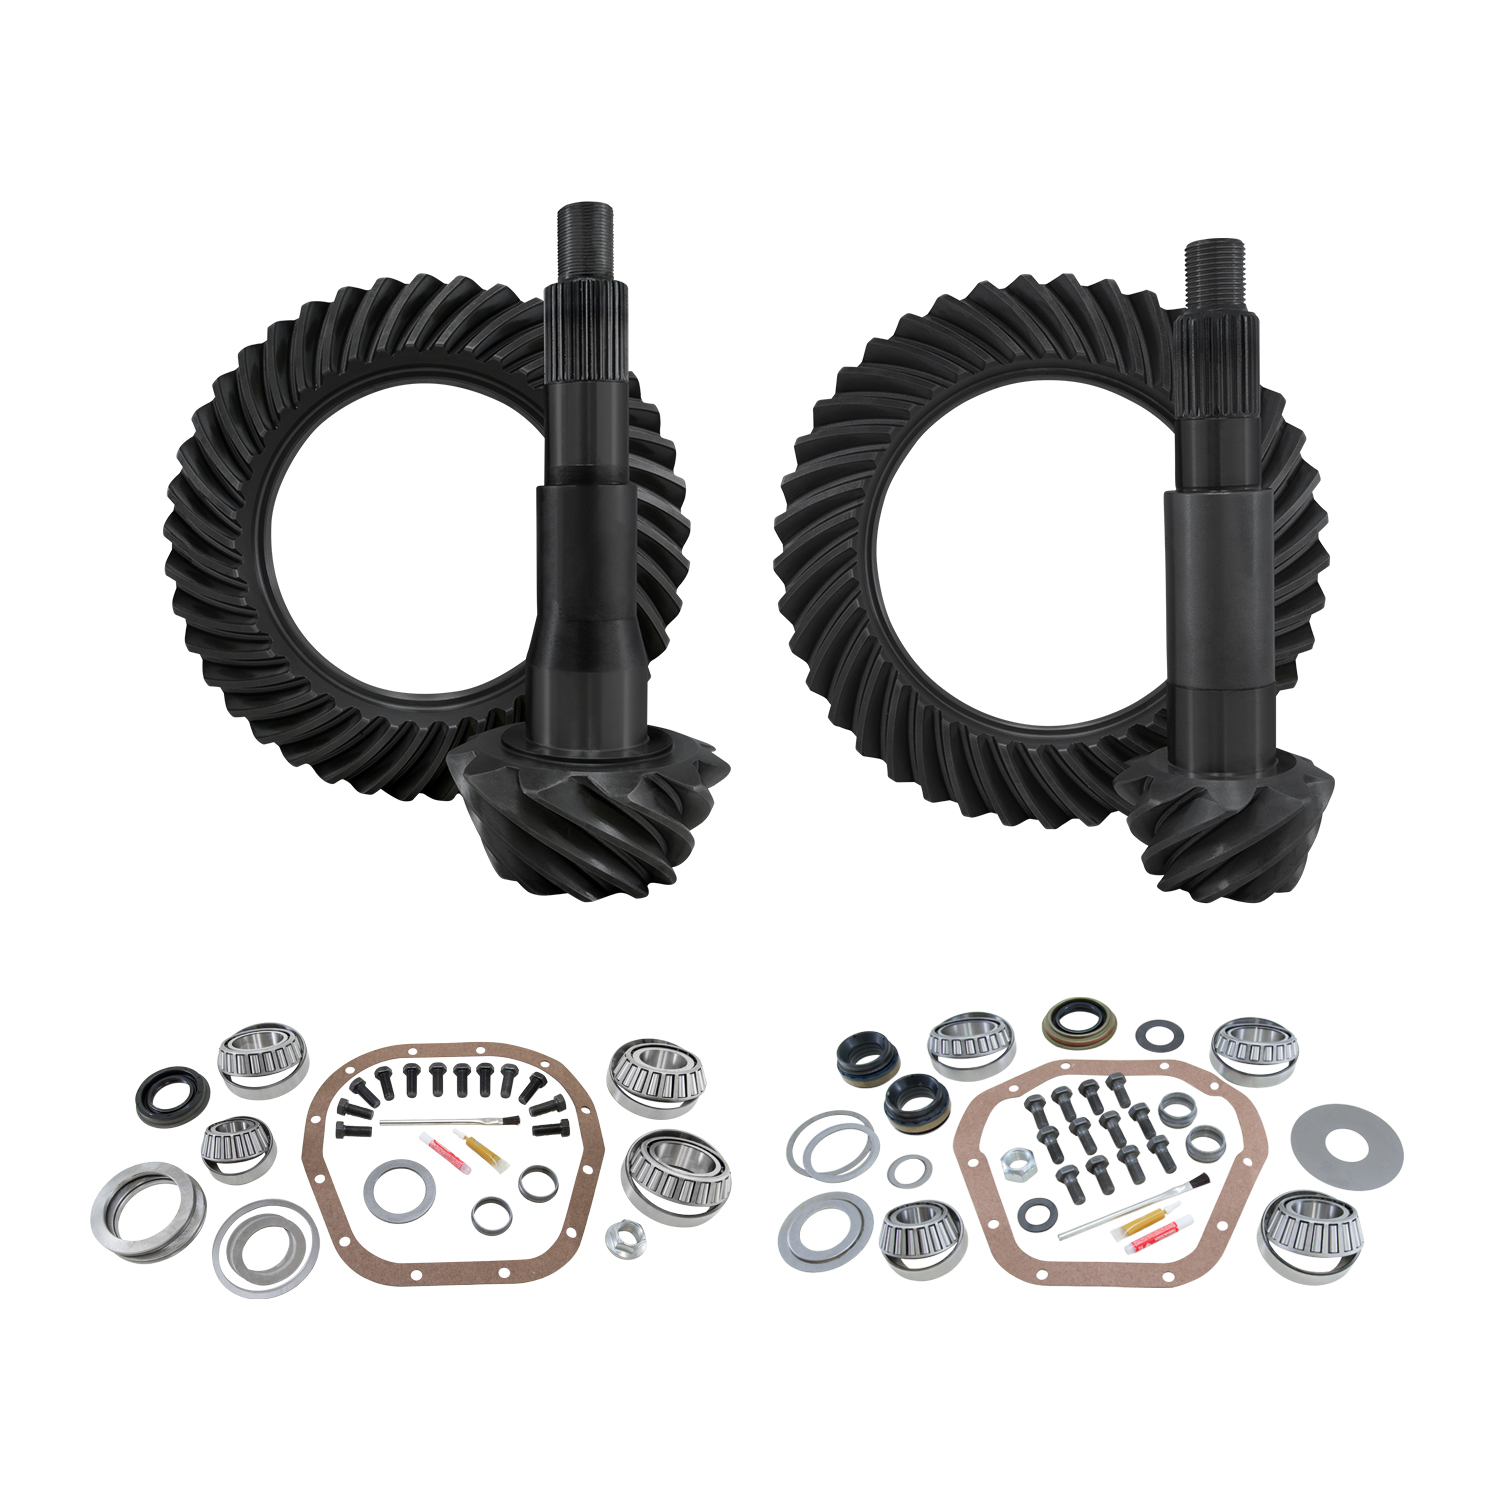 YGK129 - Yukon Complete Gear and Kit Pakage for 2000-2007 F250 and F350 Dana 60 Thick with 4:88 Gear Ratio